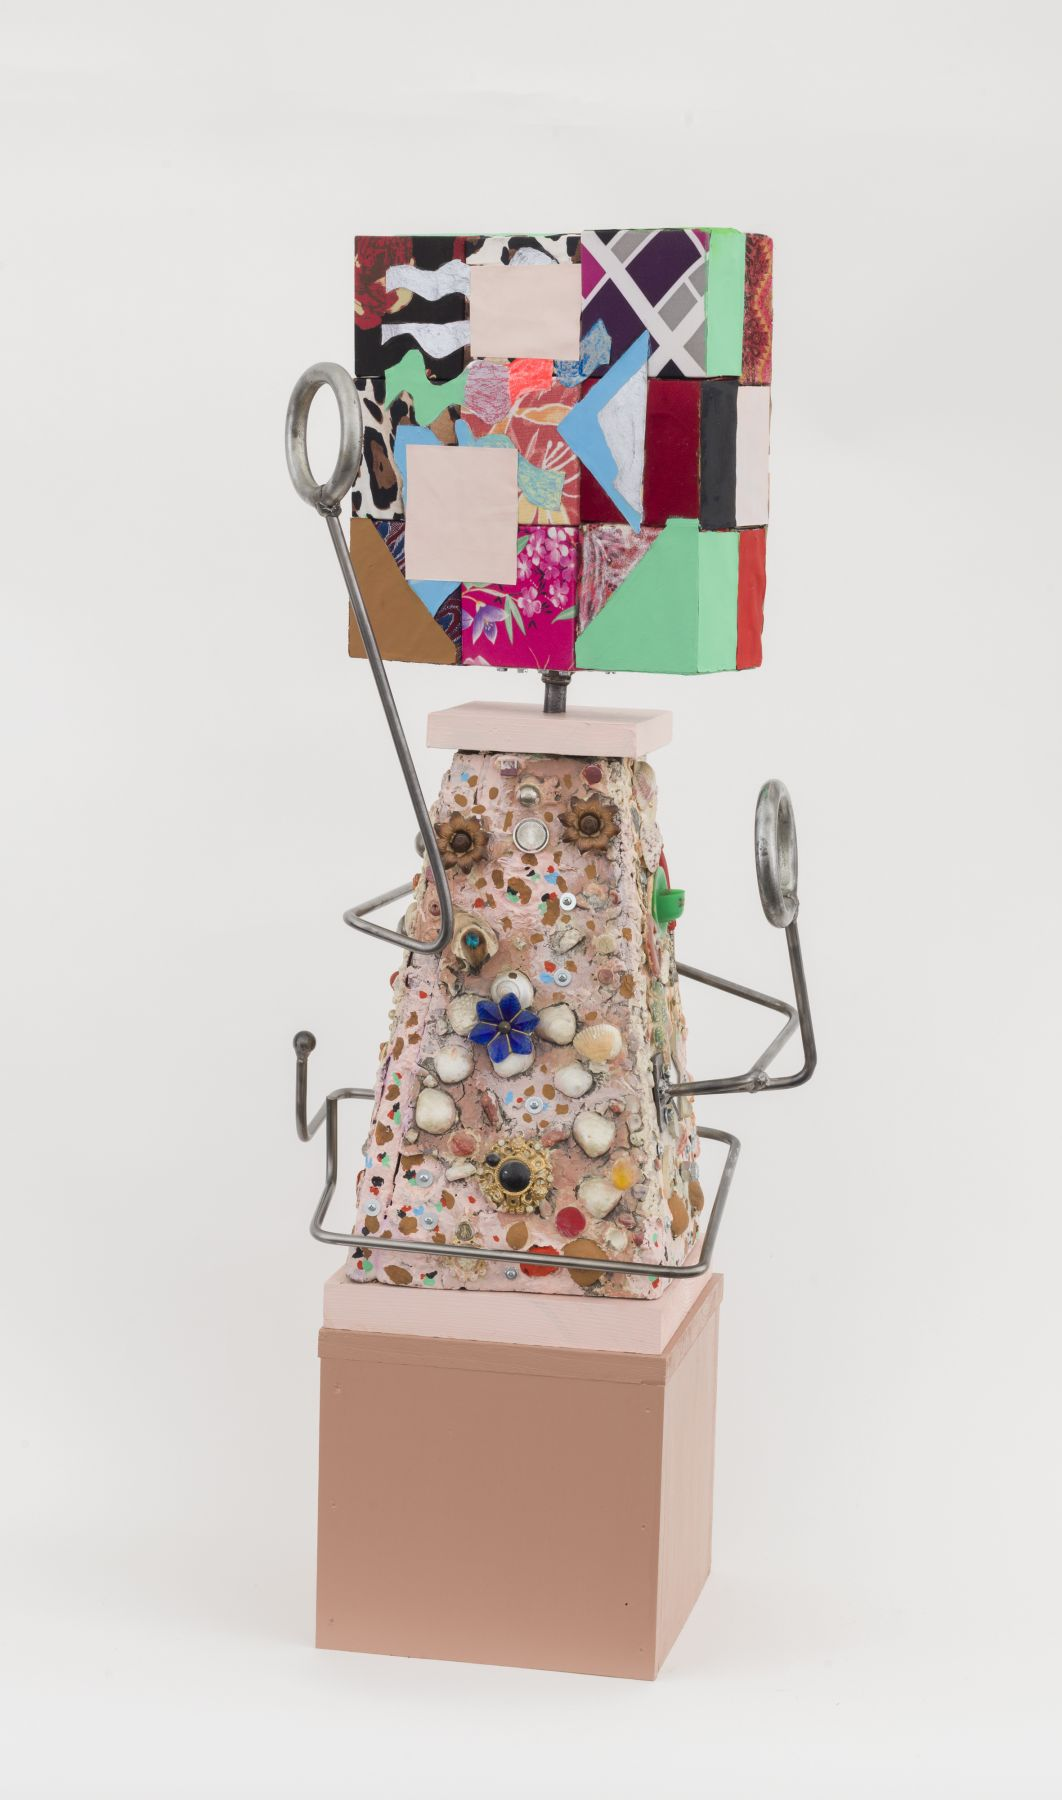 Looking for a cup of coffee, 2015-18, found base, metal rod, wooden blocks, fabric, paper, Flashe acrylic